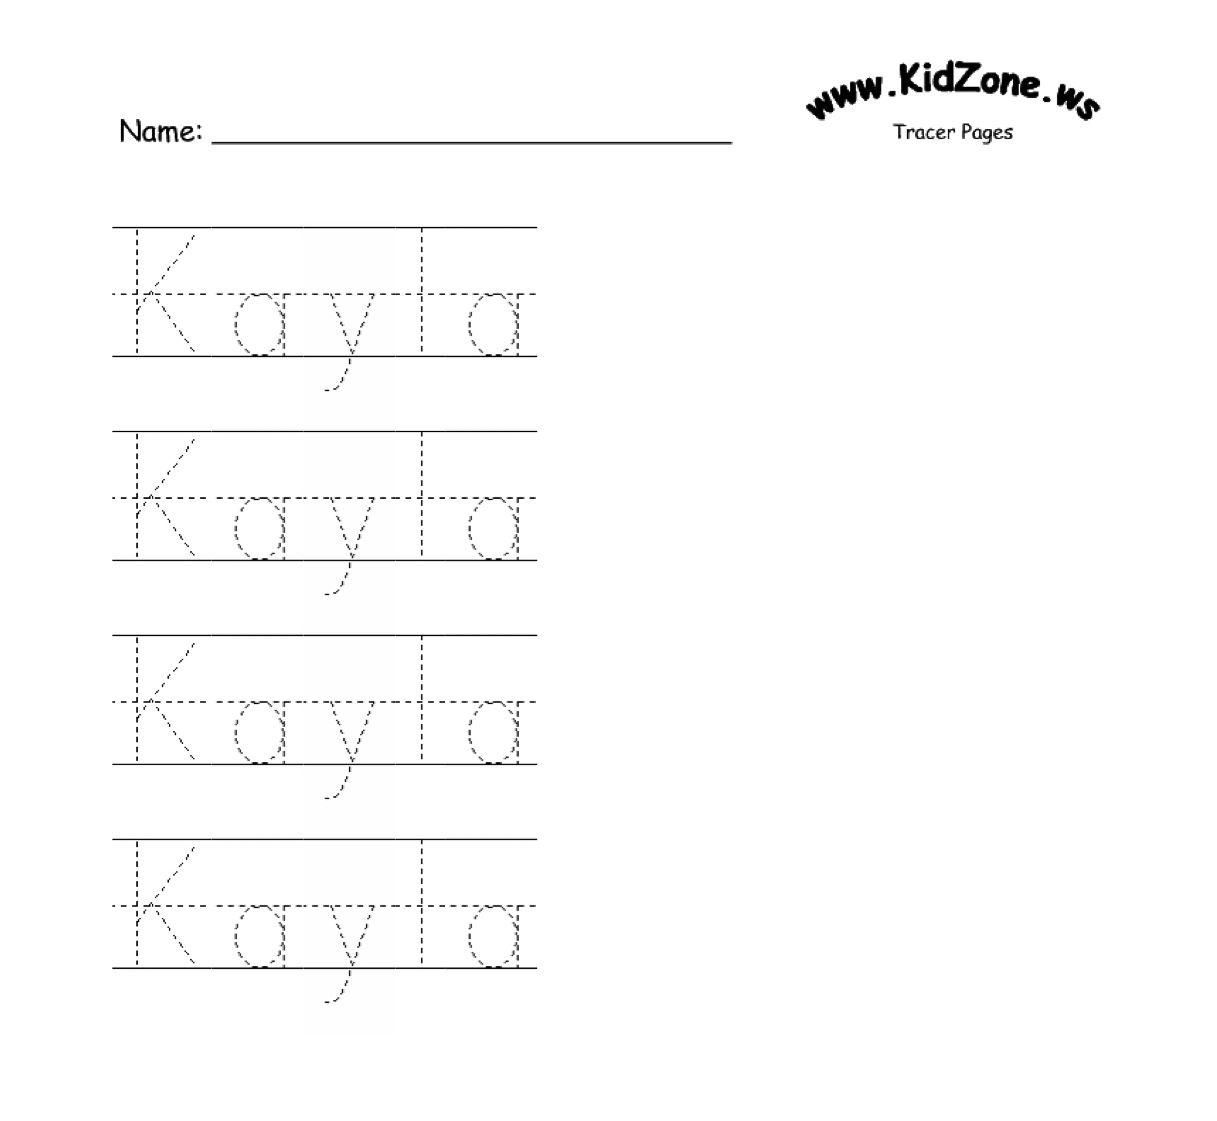 Custom Name Tracer Pages   Preschool Writing, Name Tracing pertaining to Pre K Custom Name Tracing